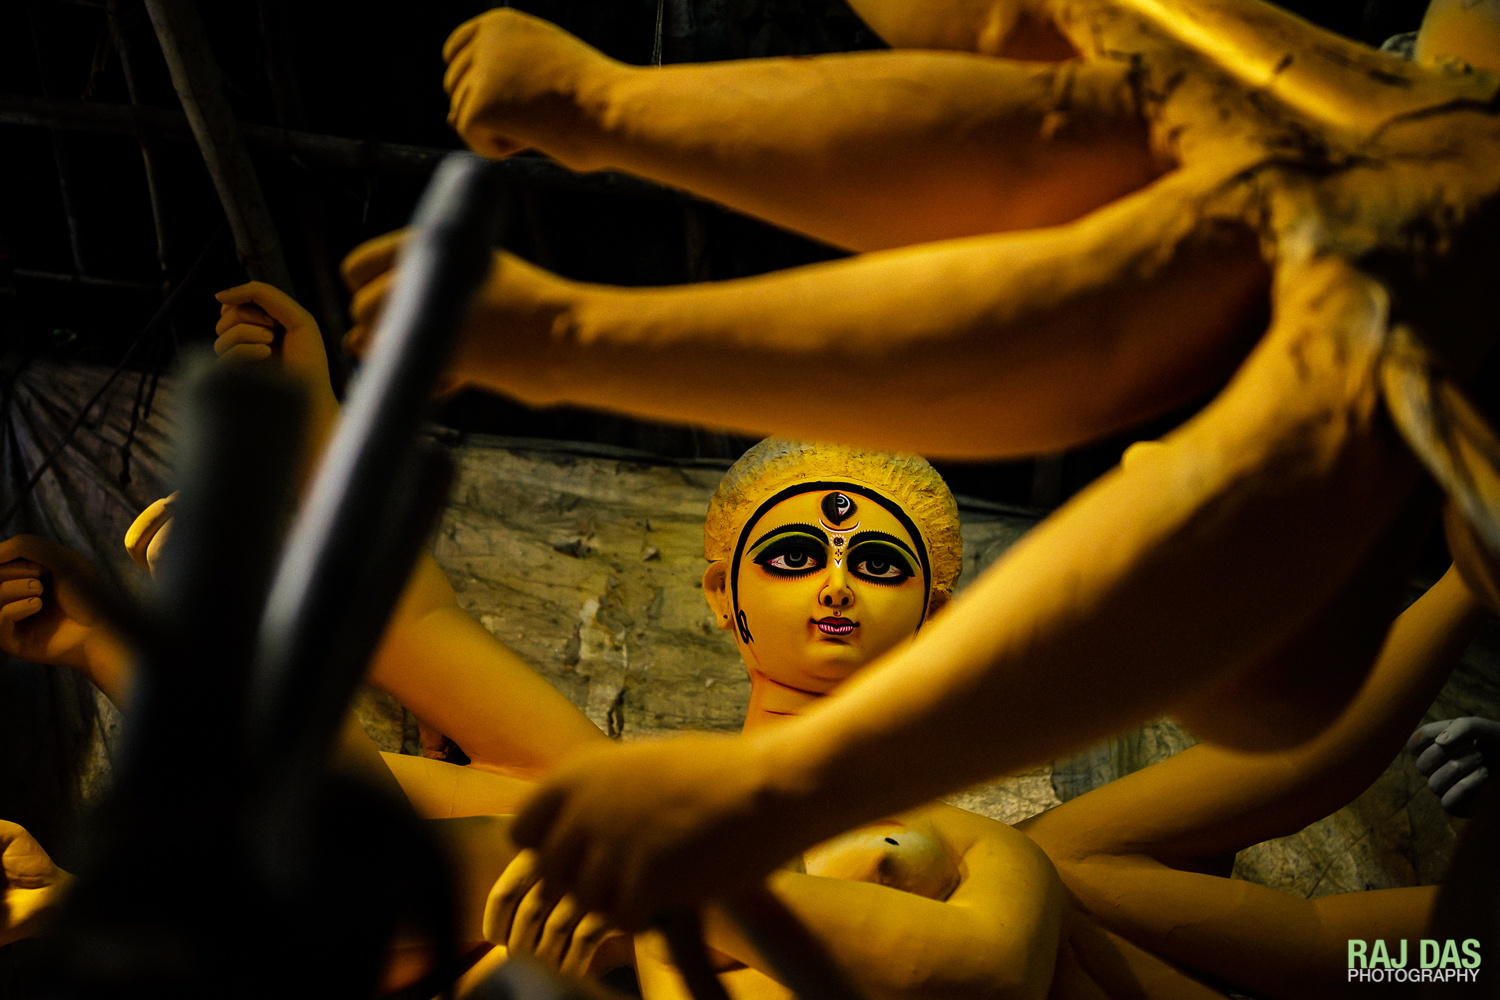 A partially completed Durga idol in a studio in one of the alleyways of Kumartulli